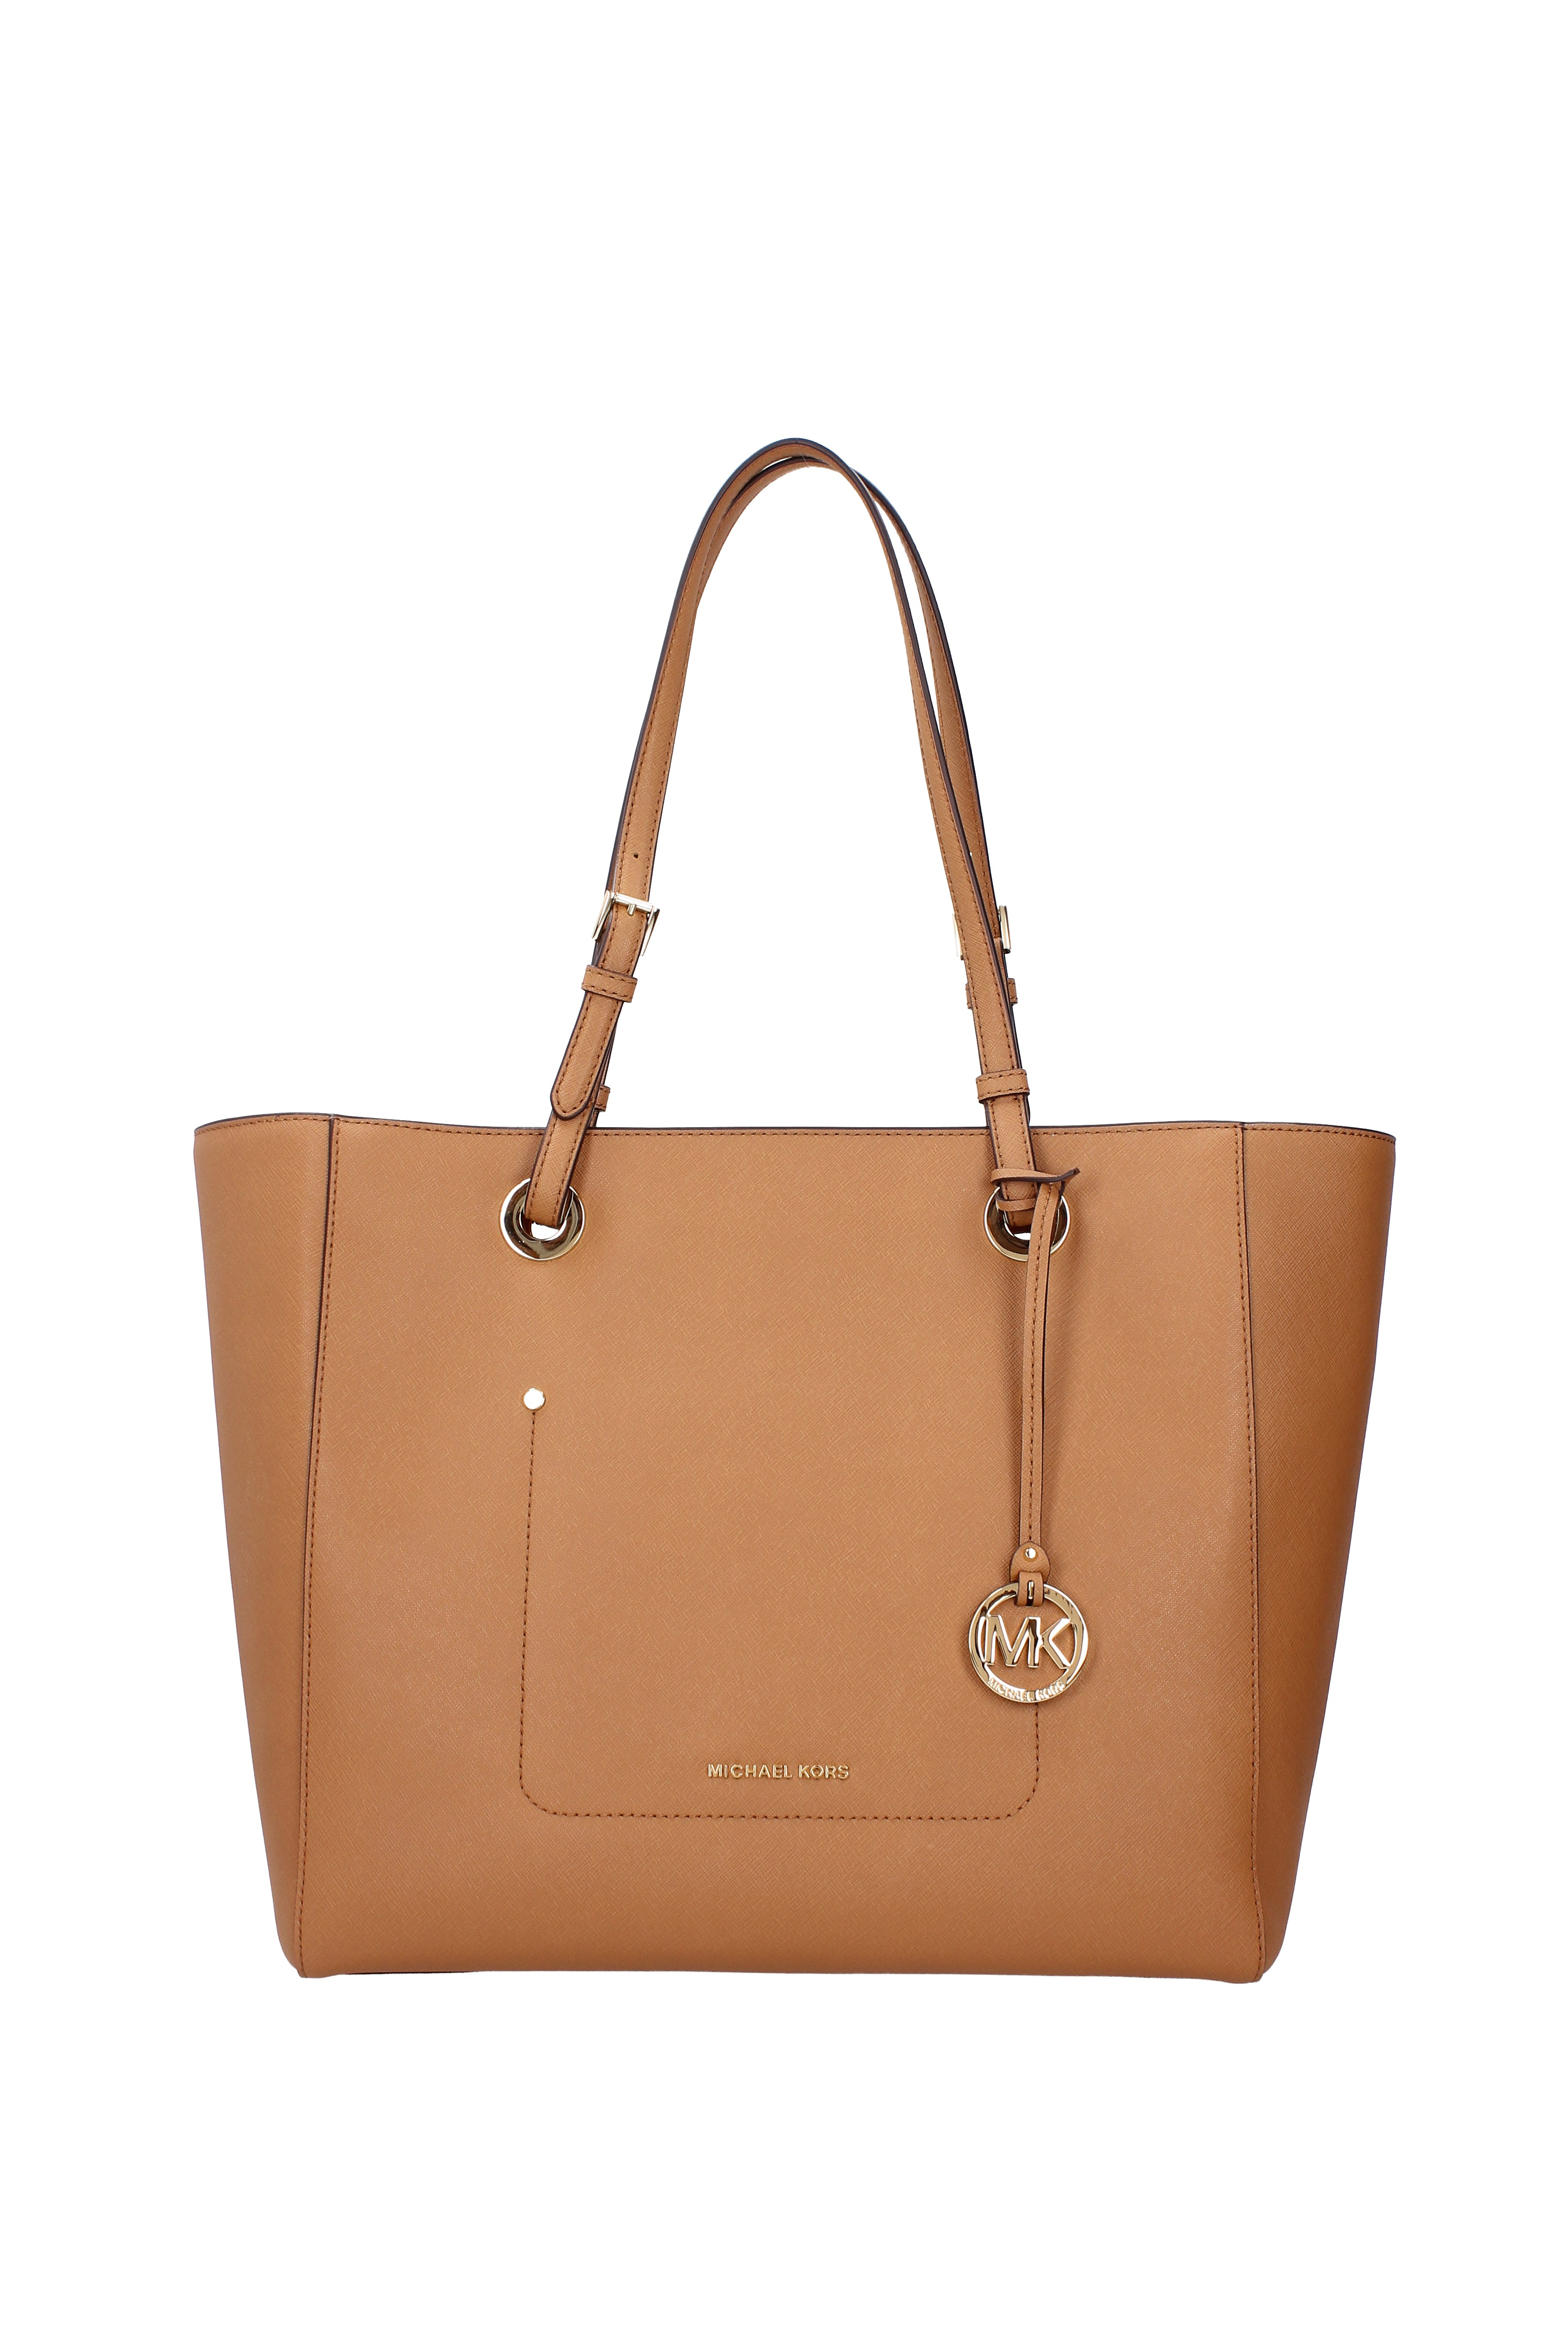 Michael kors bags ebay philippines - Shoulder Bags Michael Kors Walsh Lg Women Leather